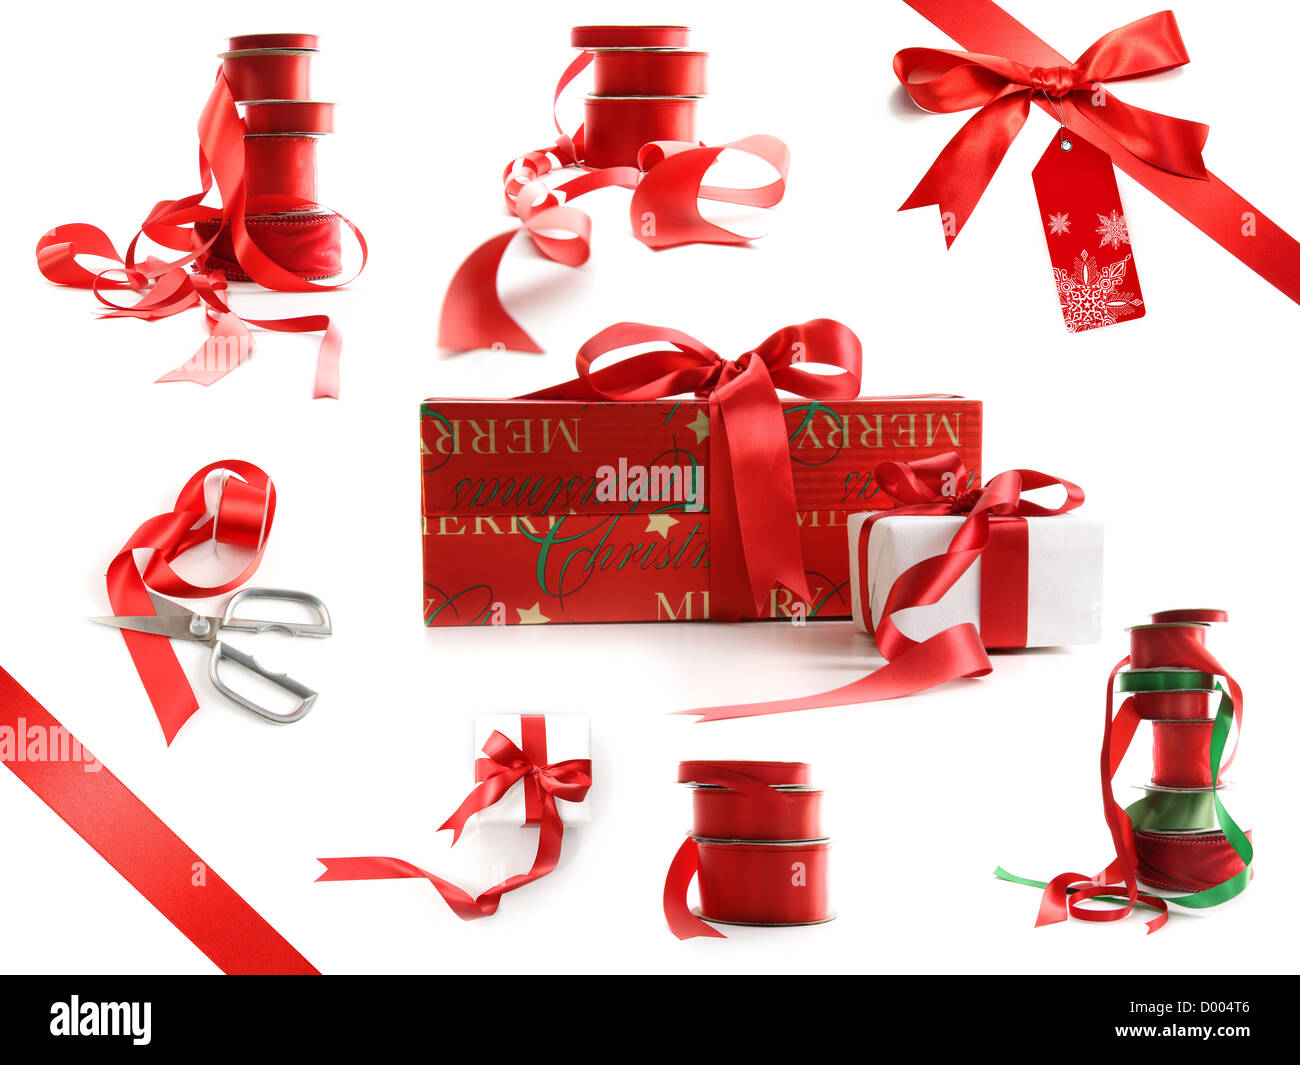 Different sizes of red ribbons and gift wrapped boxes isolated on white background - Stock Image